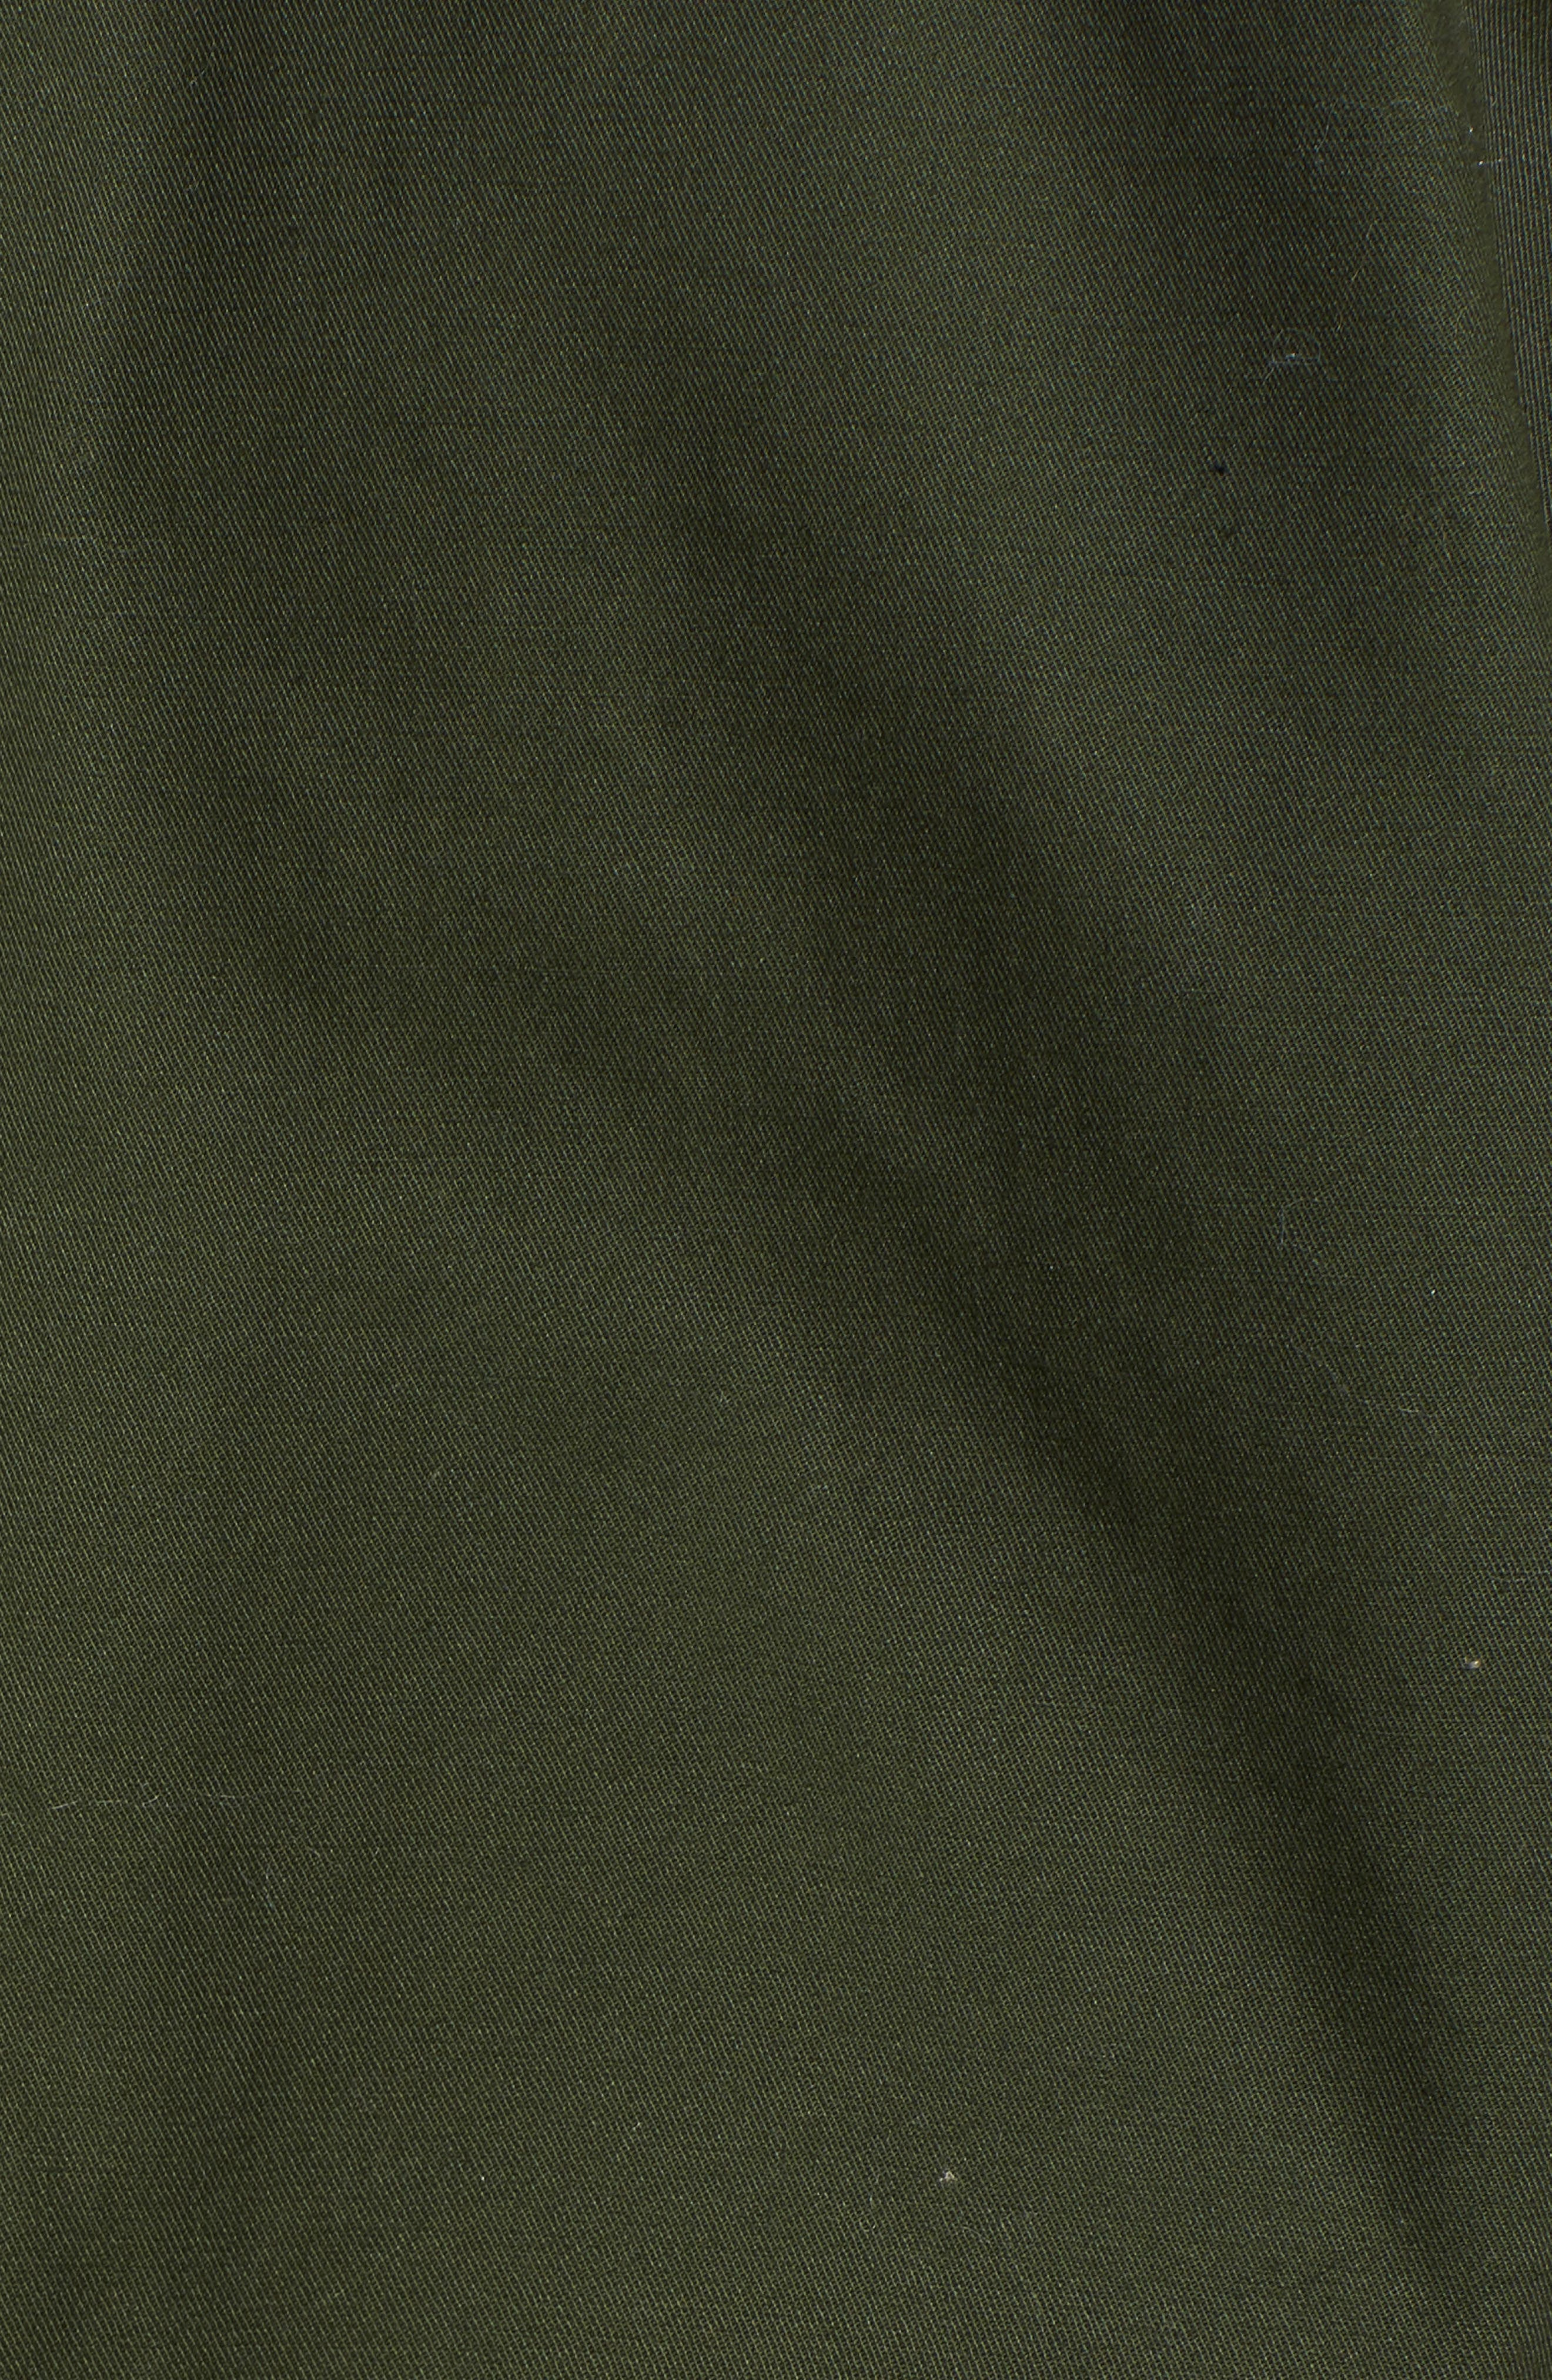 Maddox Cotton Twill Army Jacket,                             Alternate thumbnail 7, color,                             301